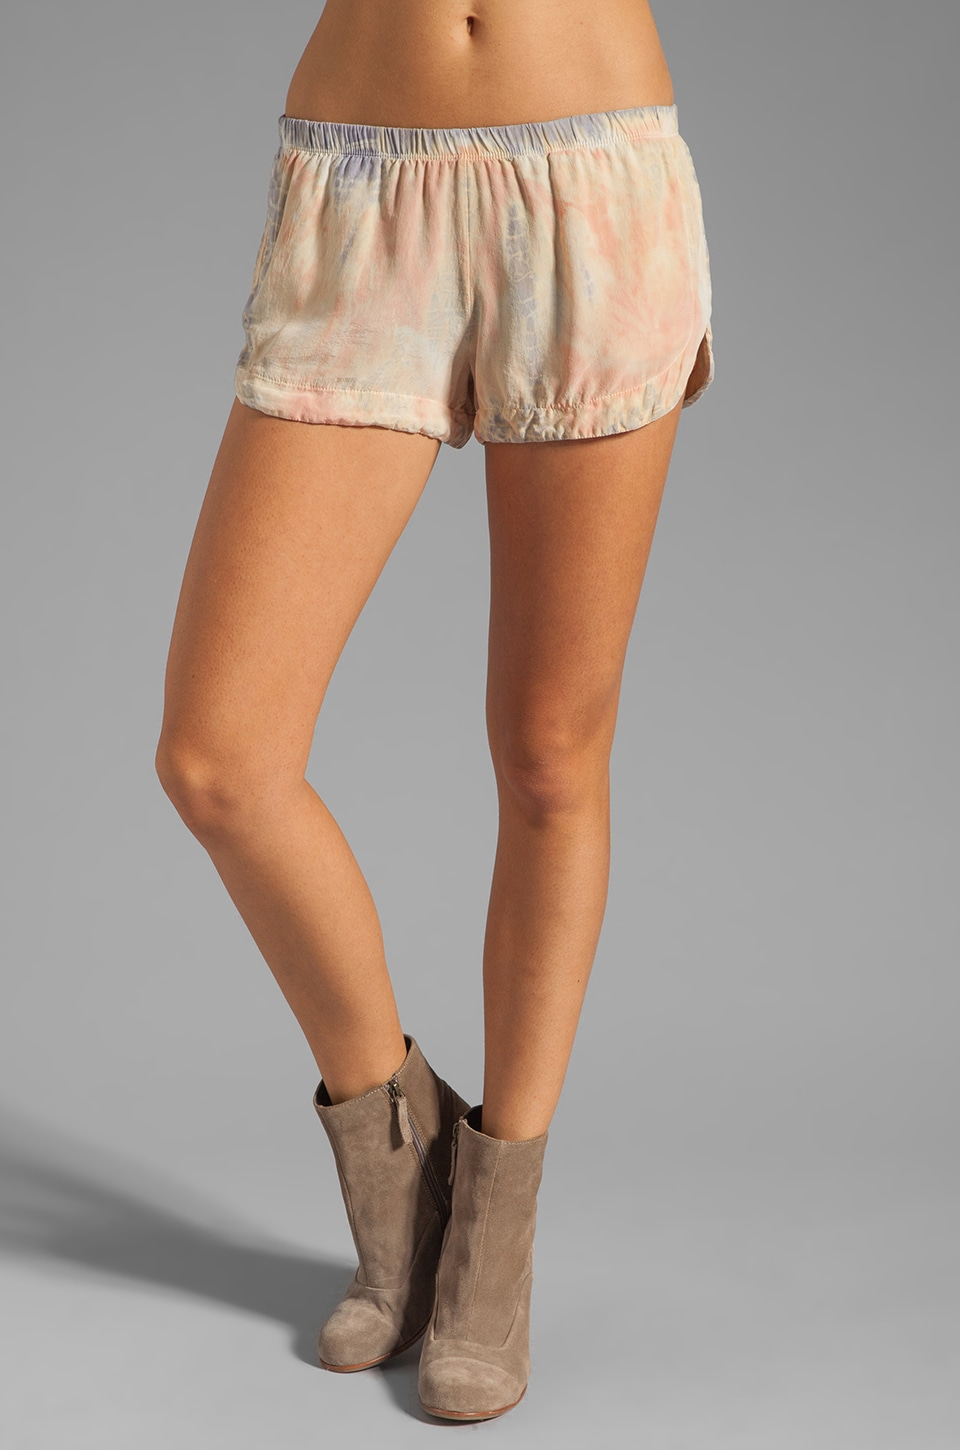 Gypsy 05 Emily Silk Track Short in Blush